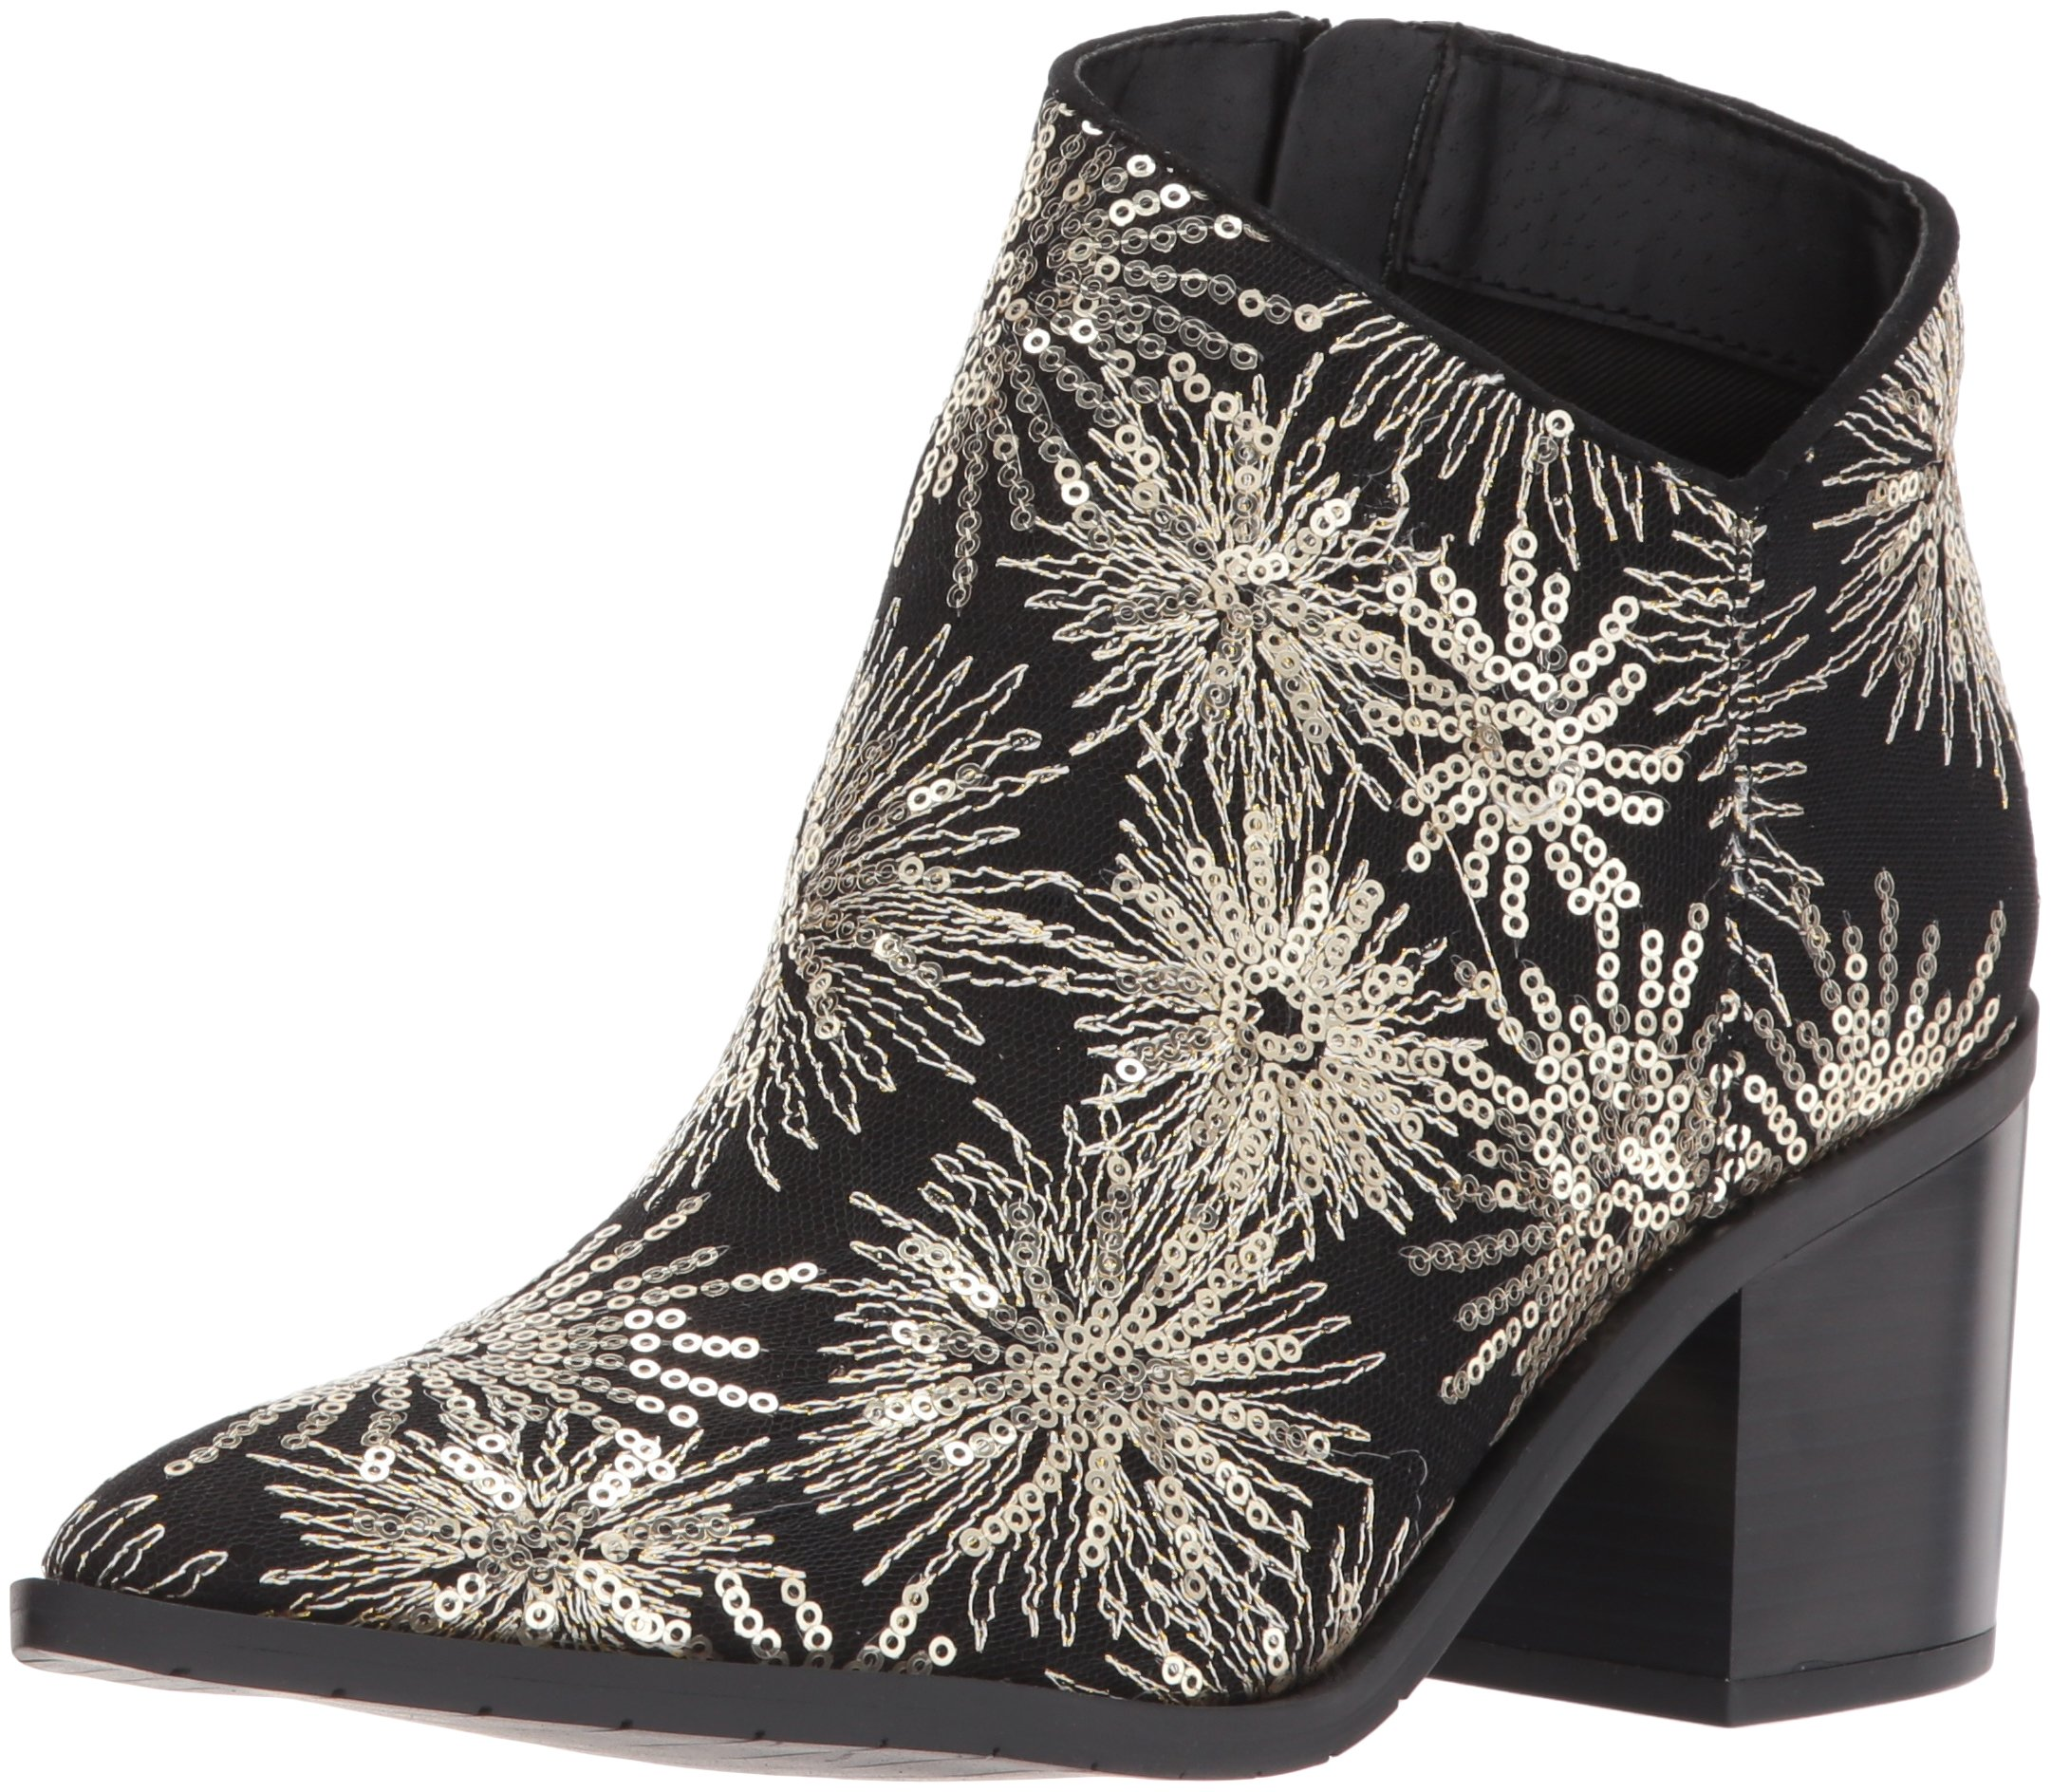 Kenneth Cole REACTION Women's Cue The Music Notch Western Style Stars Ankle Bootie, Black, 7.5 M US by Kenneth Cole REACTION